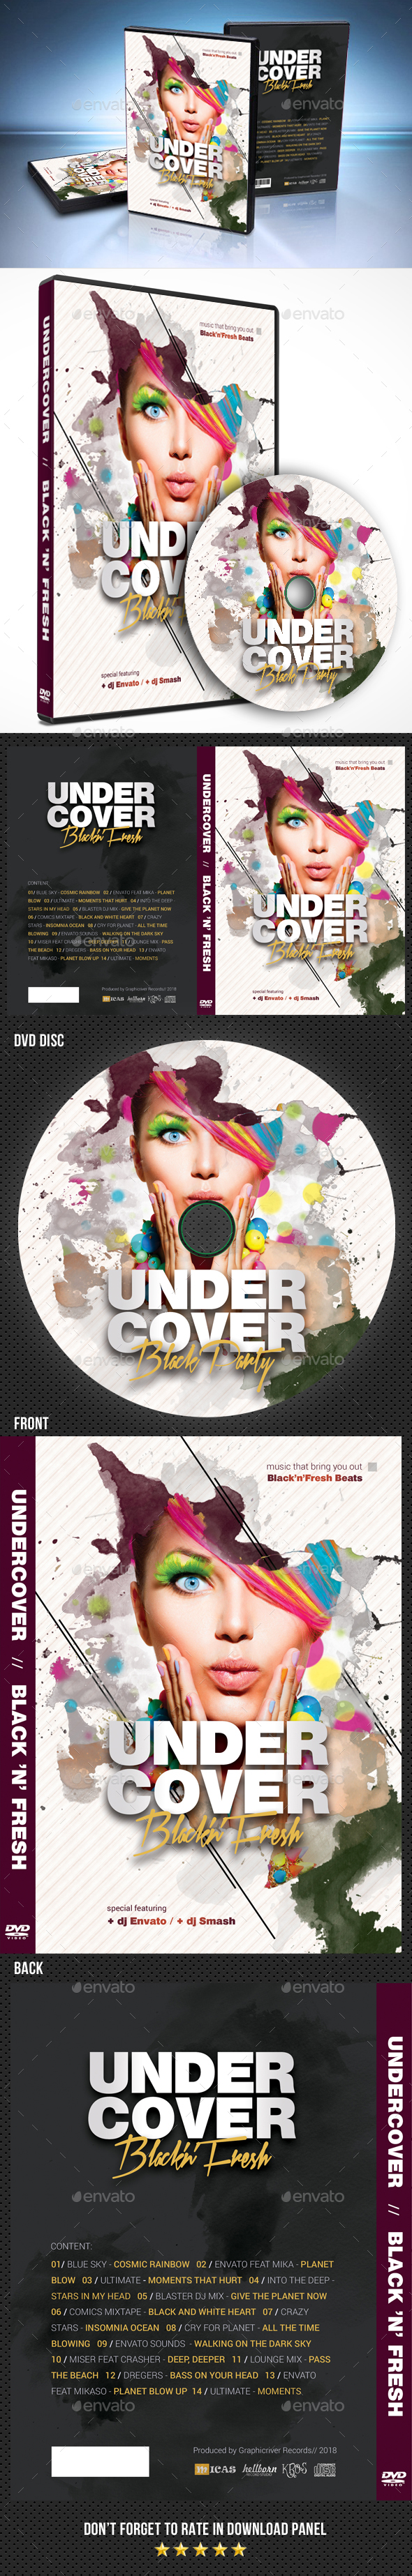 Undercover DVD Cover - CD & DVD Artwork Print Templates